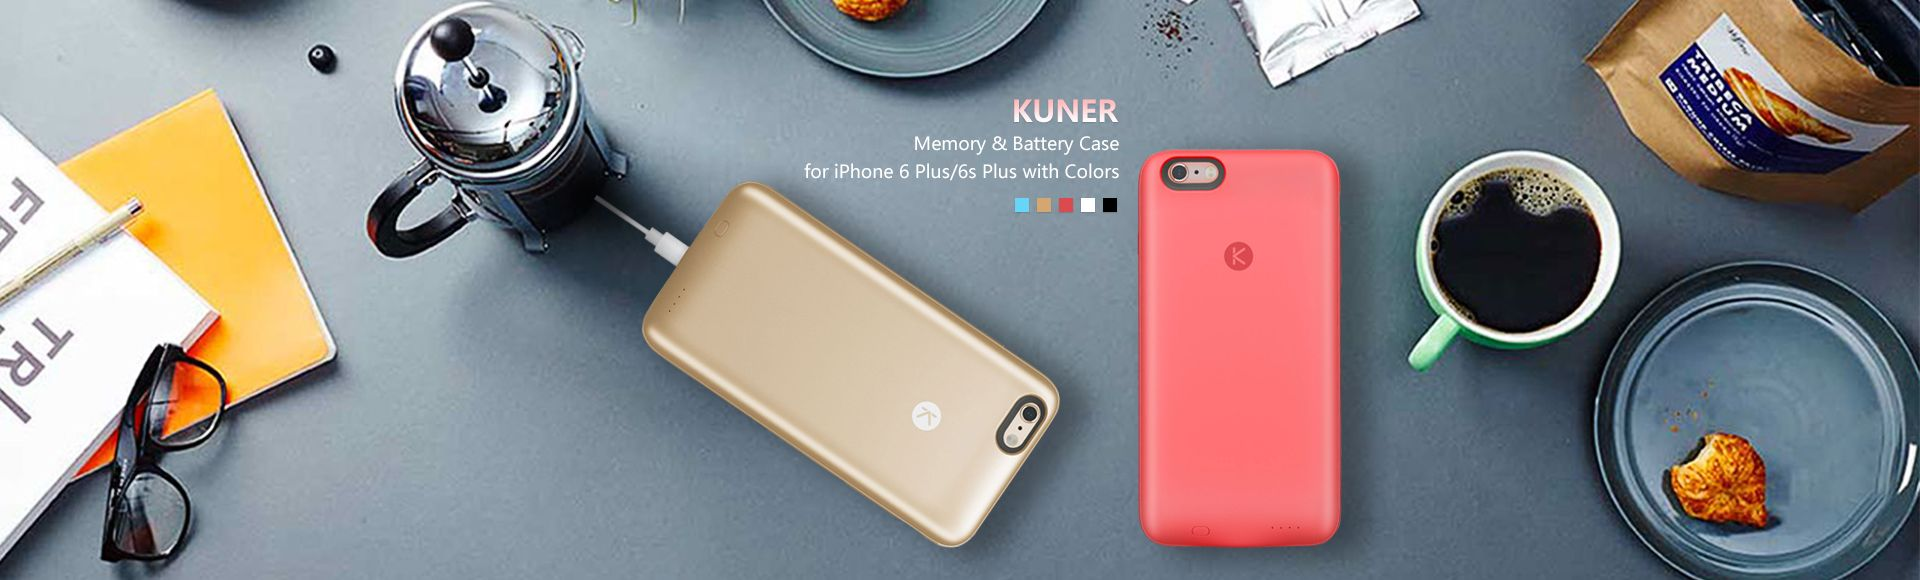 Kuner Kuke iPhone 6 Plus / 6s Plus Memory Battery Case - 2400mAh rechargeable extended battery, Expanding memory 16/64G